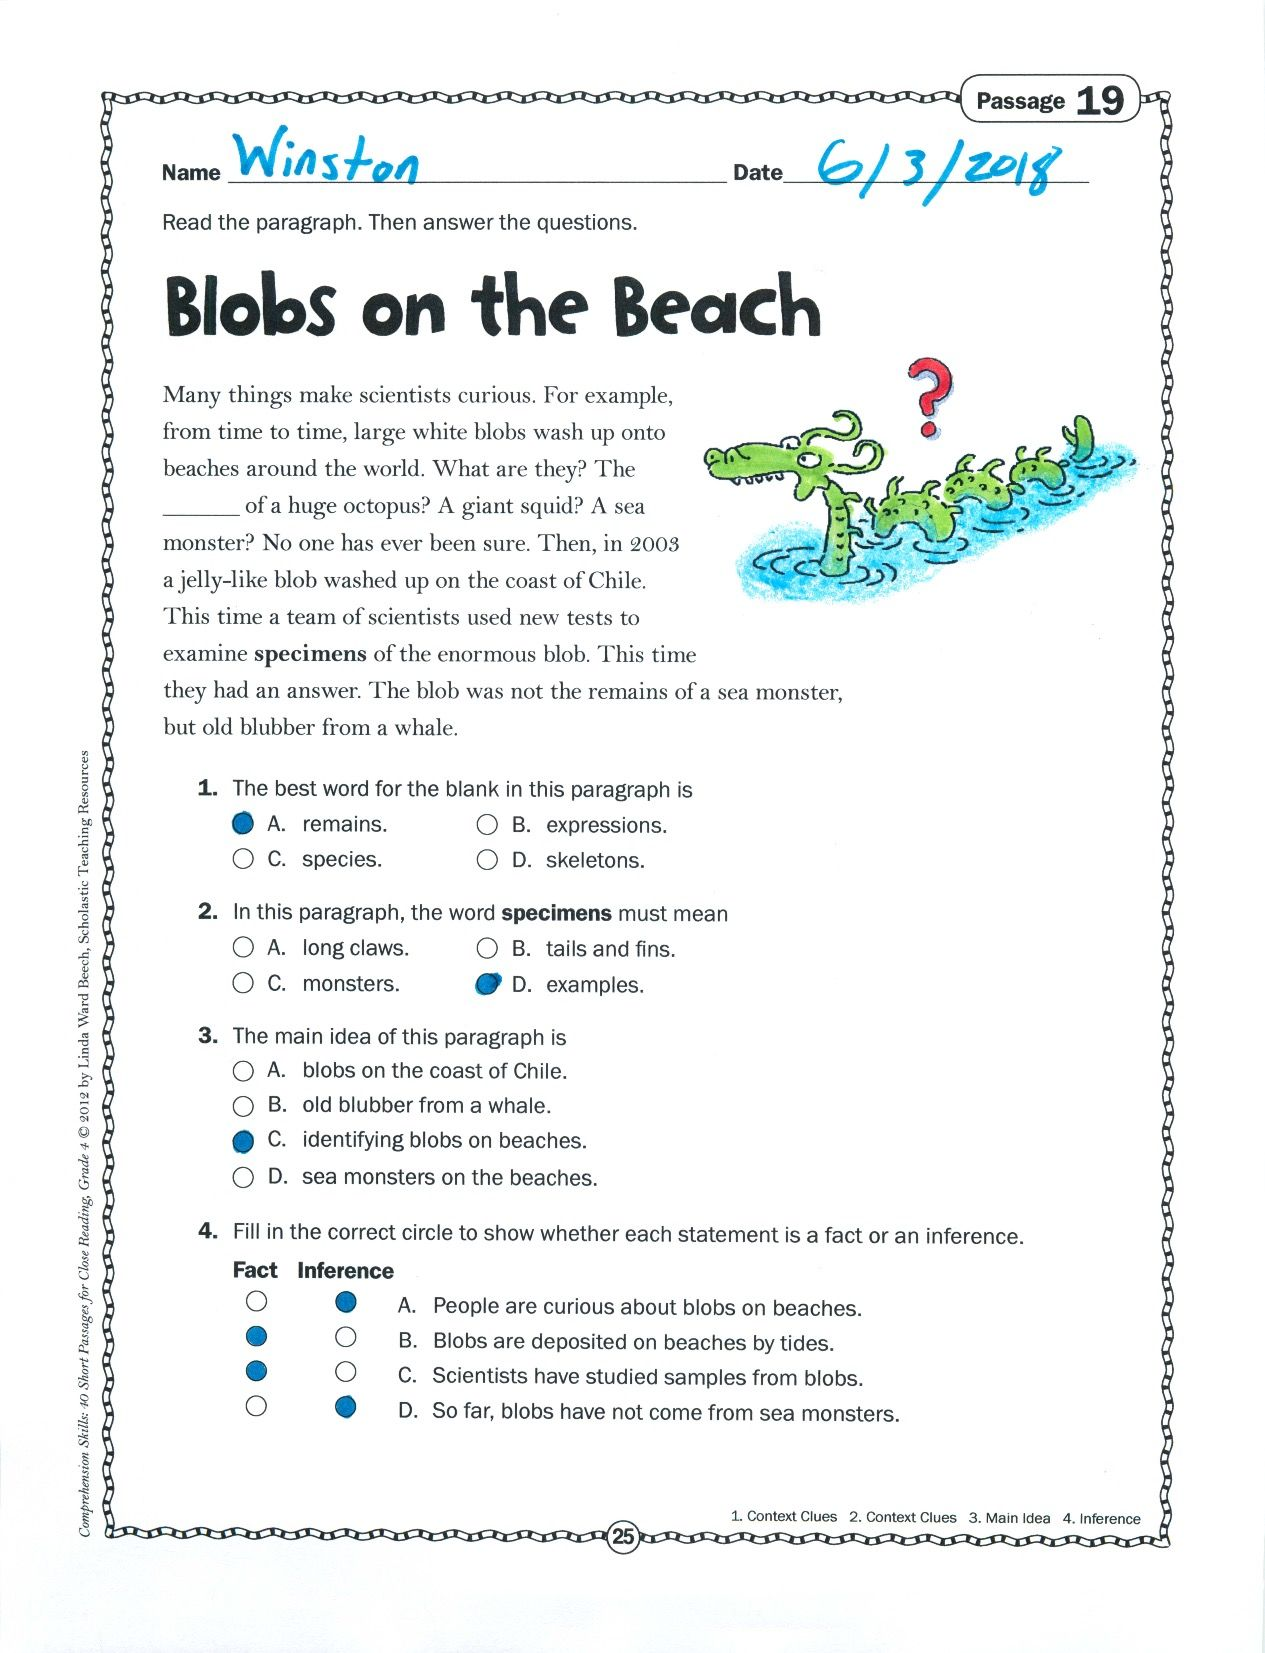 Students Will Be Fascinated By This Nonfiction Text About Strange Blobs That Wash Up On The